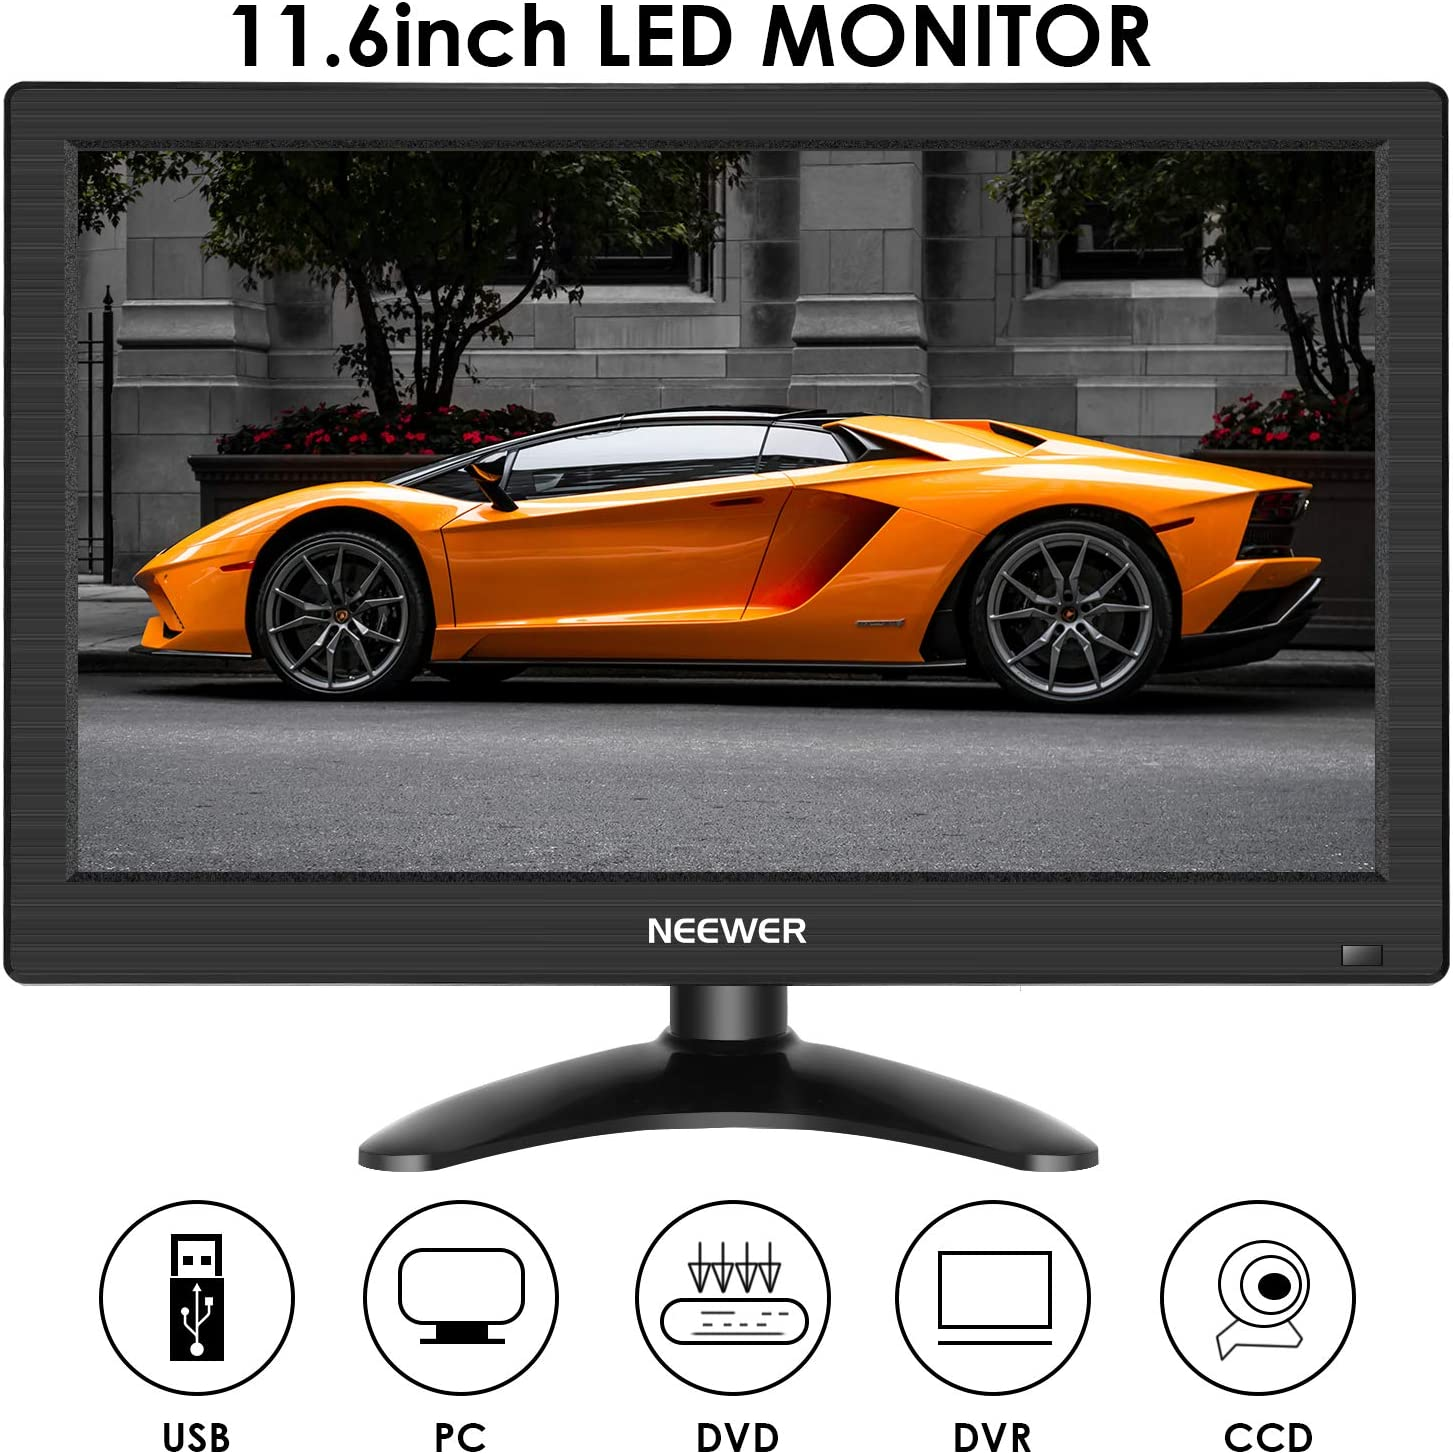 Neewer F11 11.6 inches 1080P HD Monitor 1920x1080 16:9 TFT IPS LCD Screen with USB HDMI VGA BNC AV Input,Built-in Speaker for Car Laptop PC Gaming Computer DVR FPV CCTV Camera Home Security System